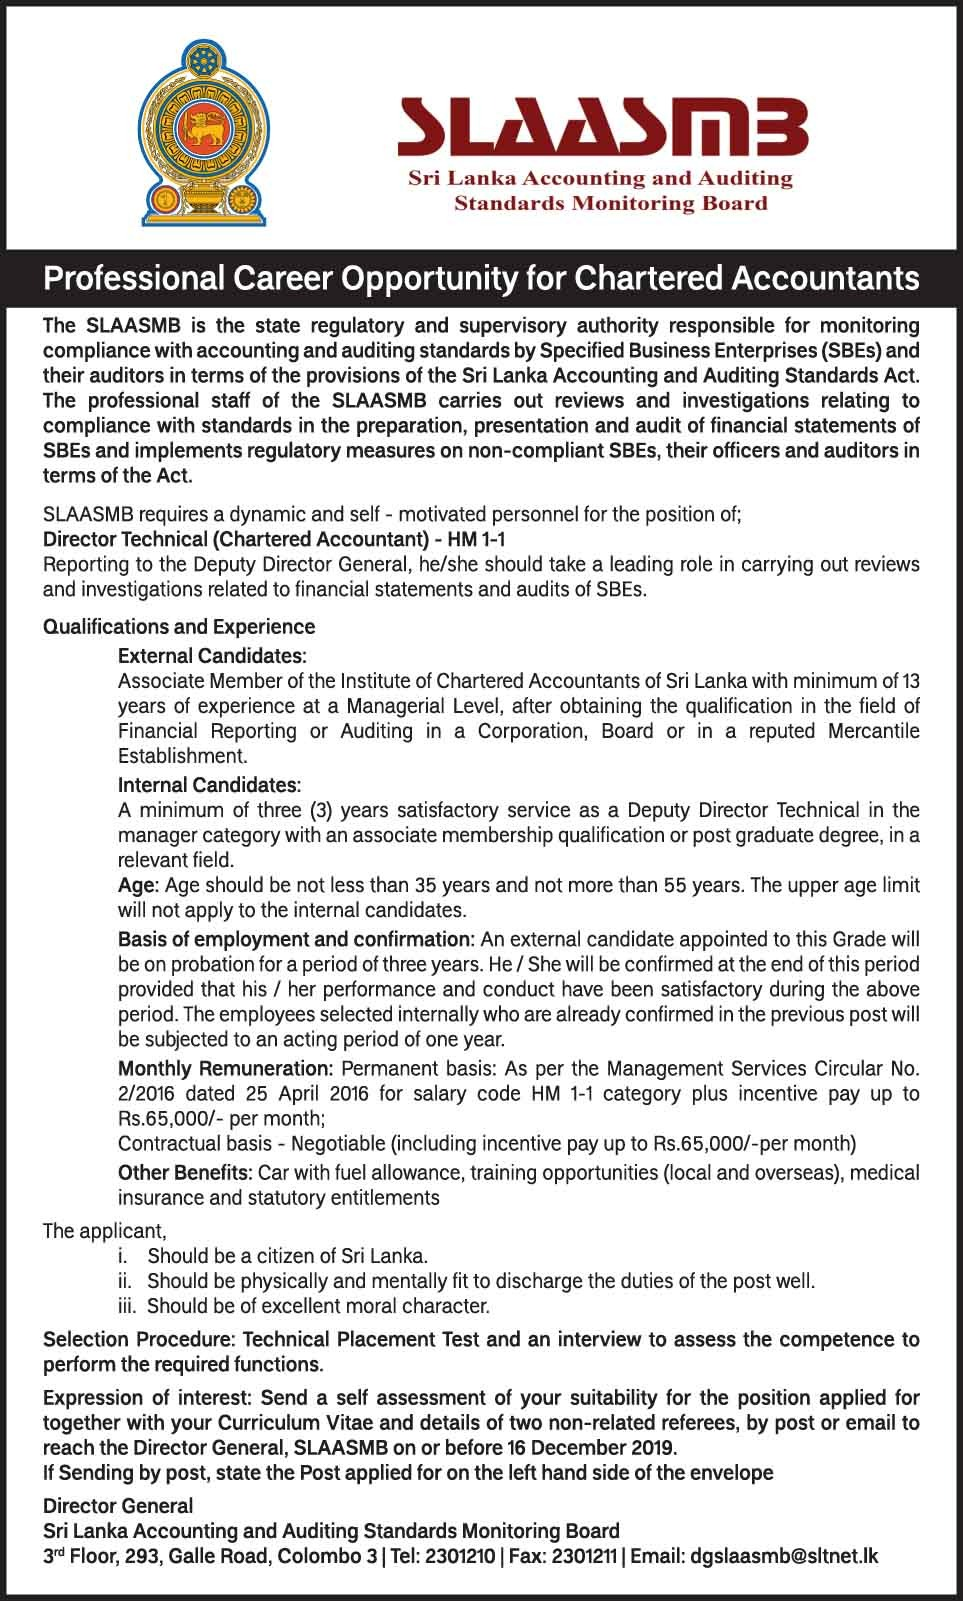 Director Technical - Sri Lanka Accounting and Auditing Standards Monitoring Board